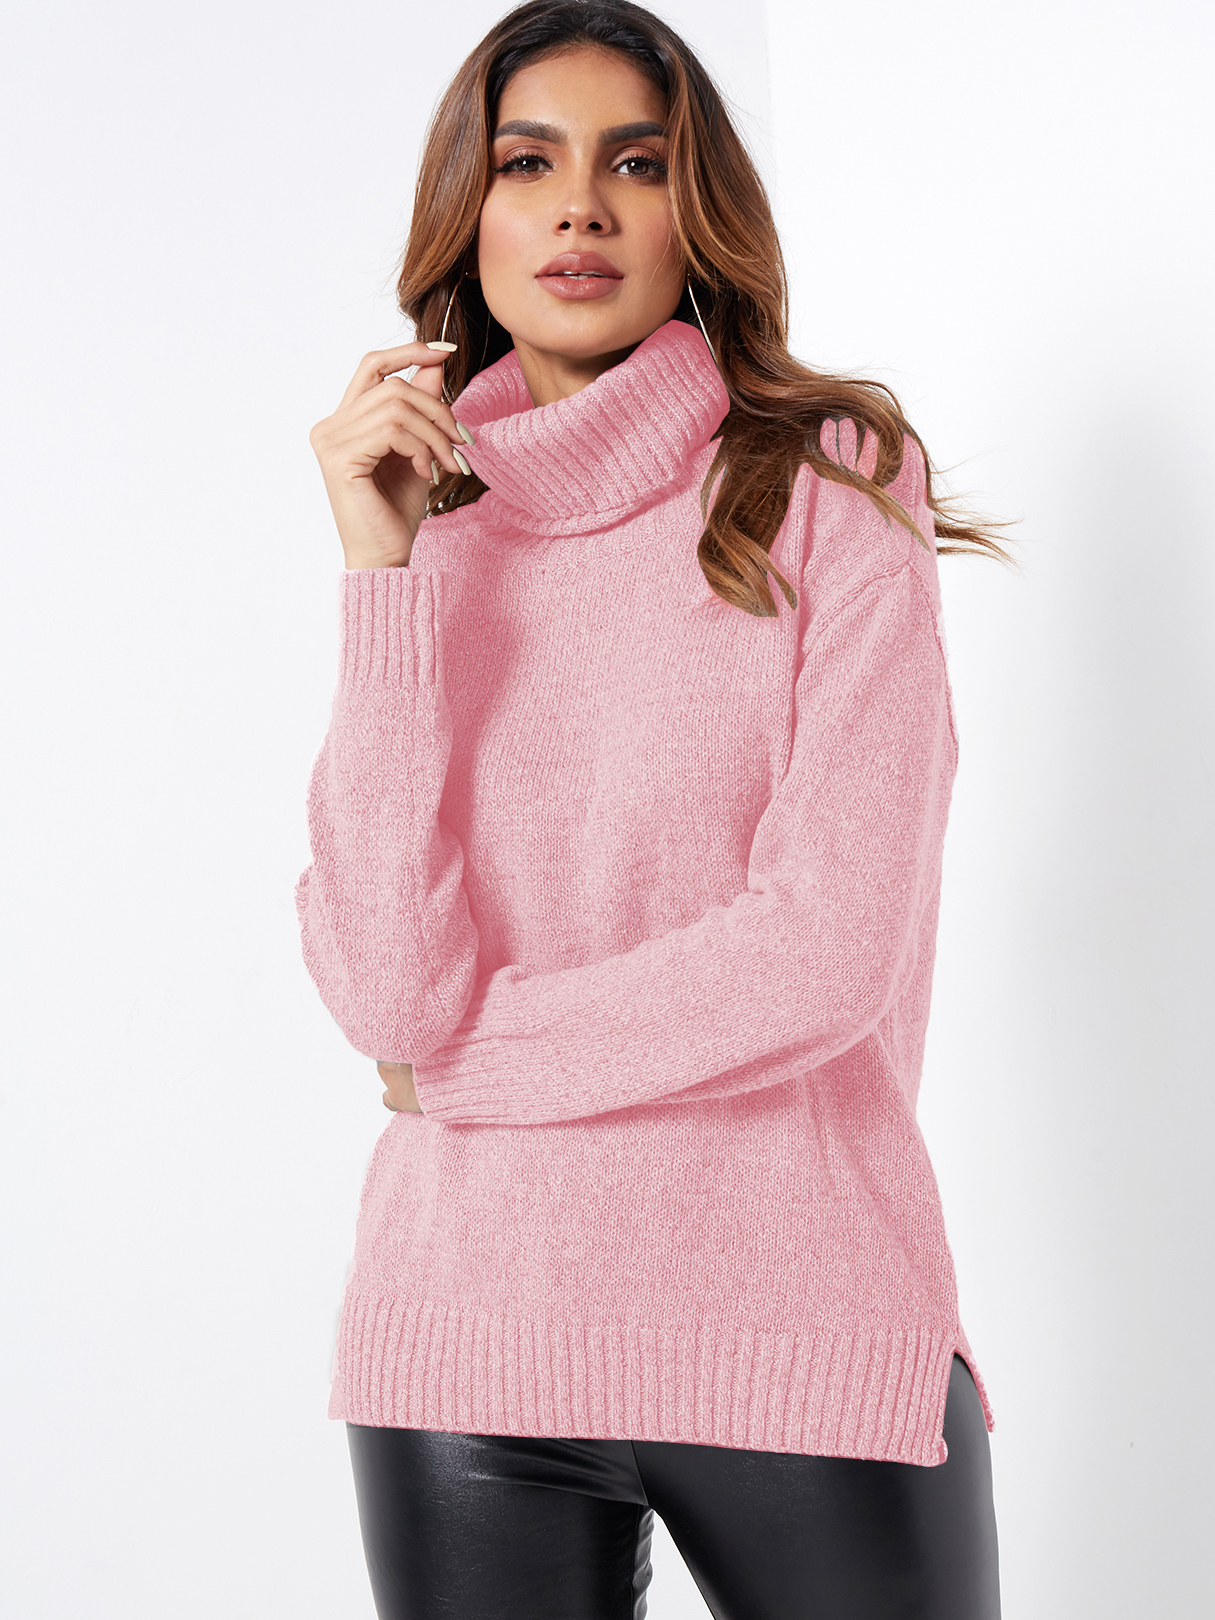 Pink Roll Neck Knitted Pullover Jumper